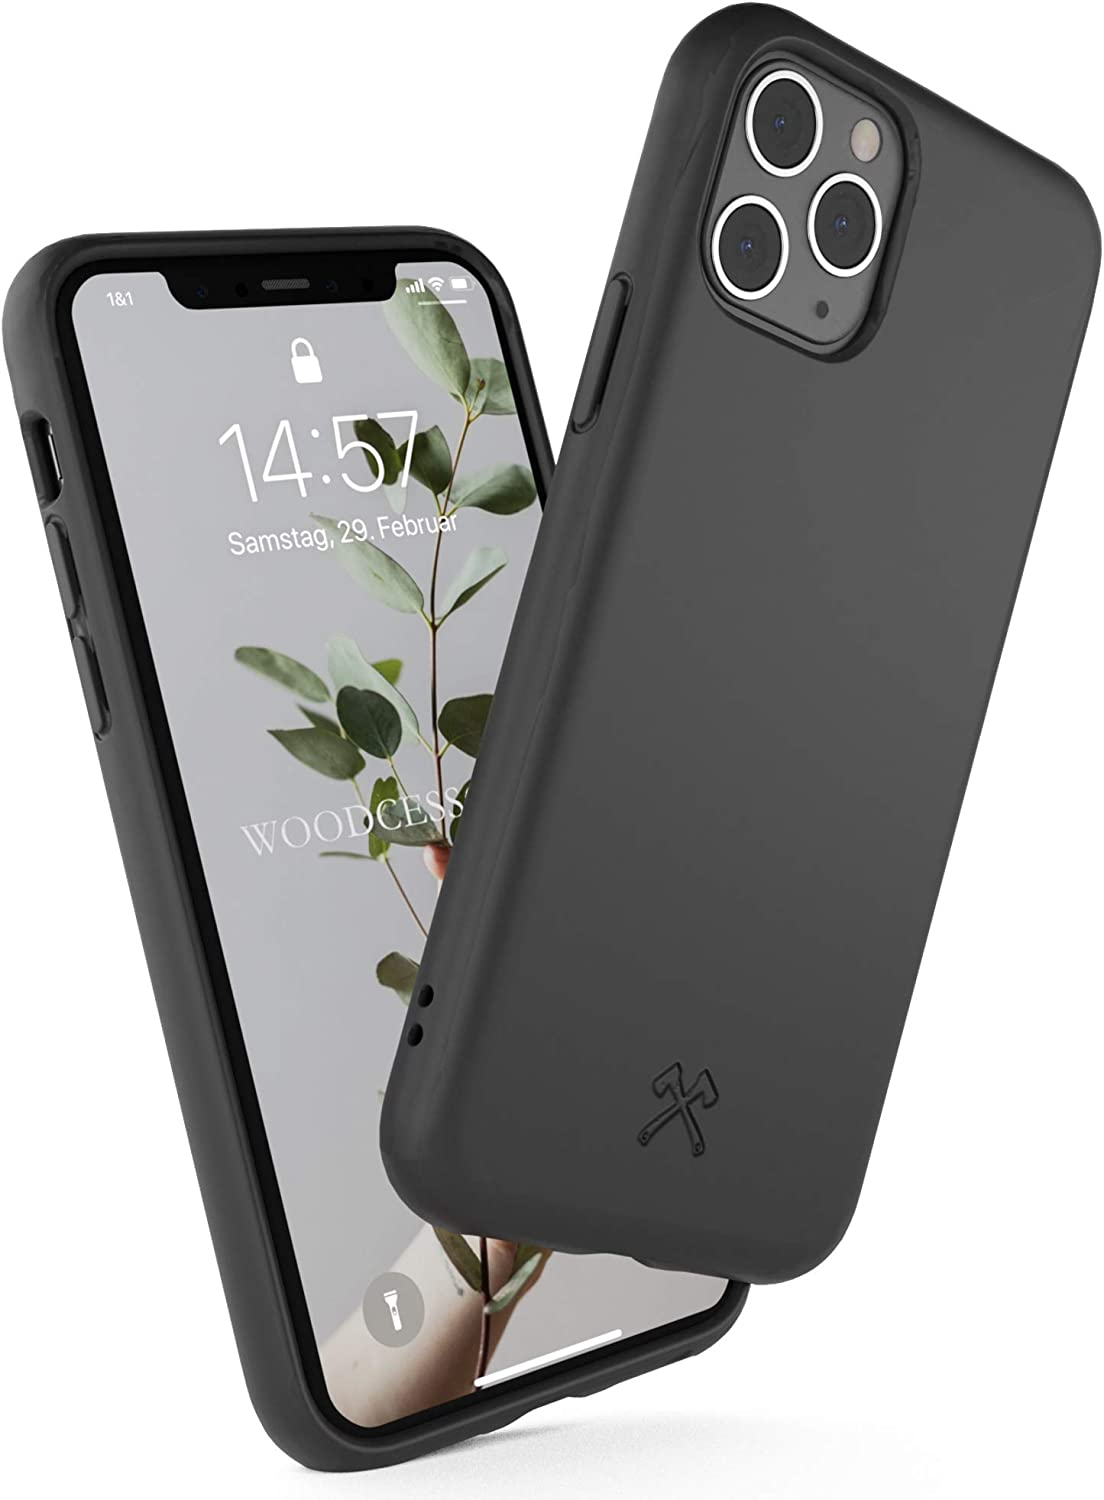 Woodcessories - Phone Case Compatible with iPhone 11 Pro Case Black - Ecofriendly, Made of Plants